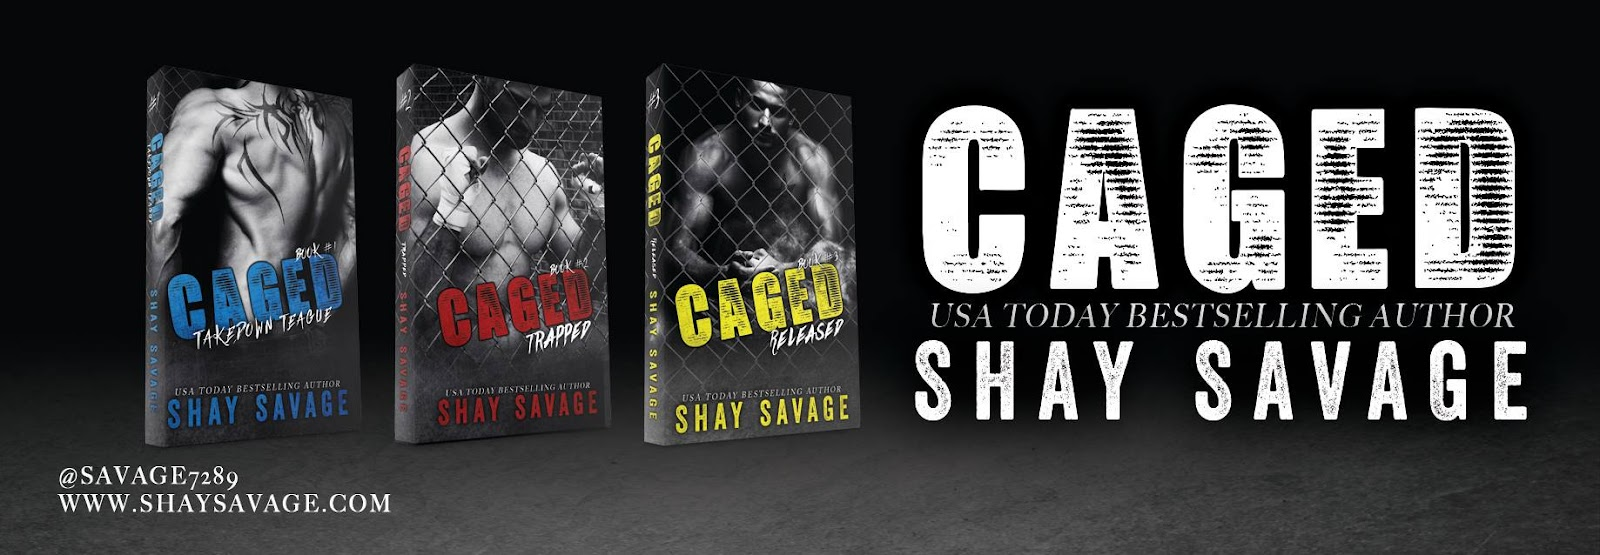 caged series.jpg